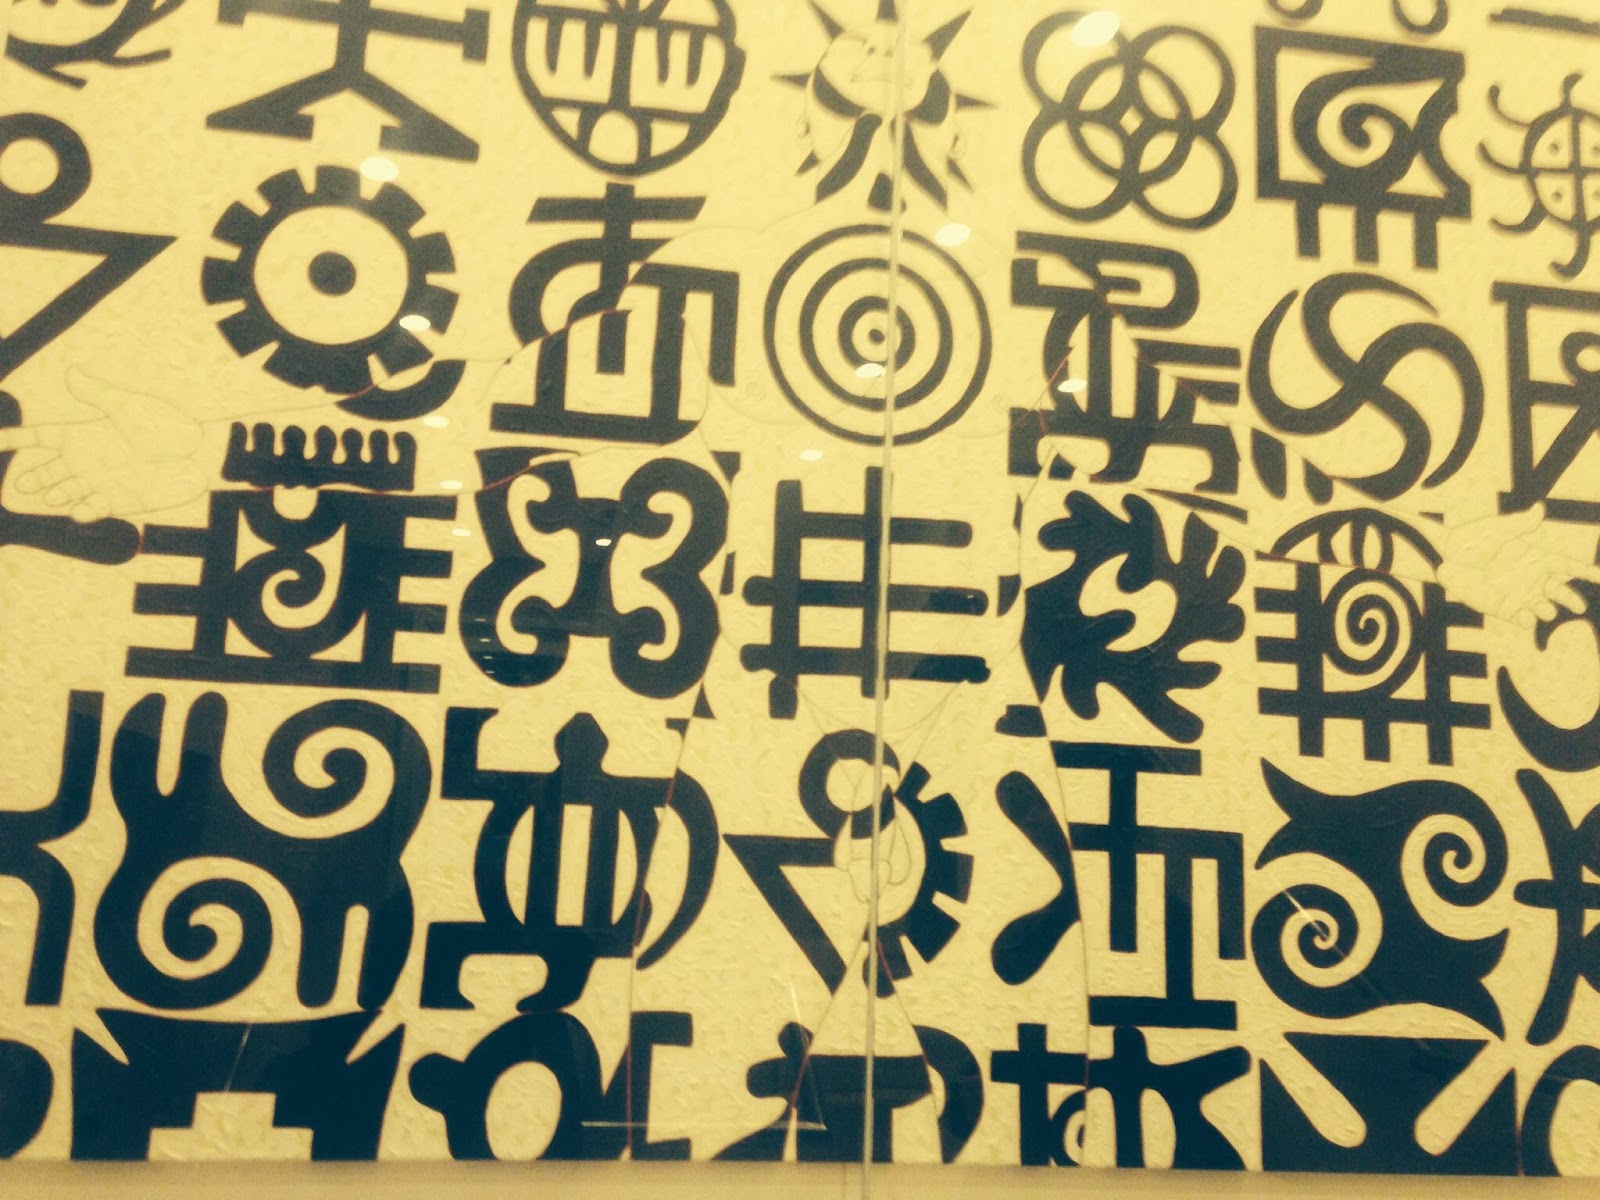 Misbeee west africa word symbol song adinkra symbol montage in the british museum biocorpaavc